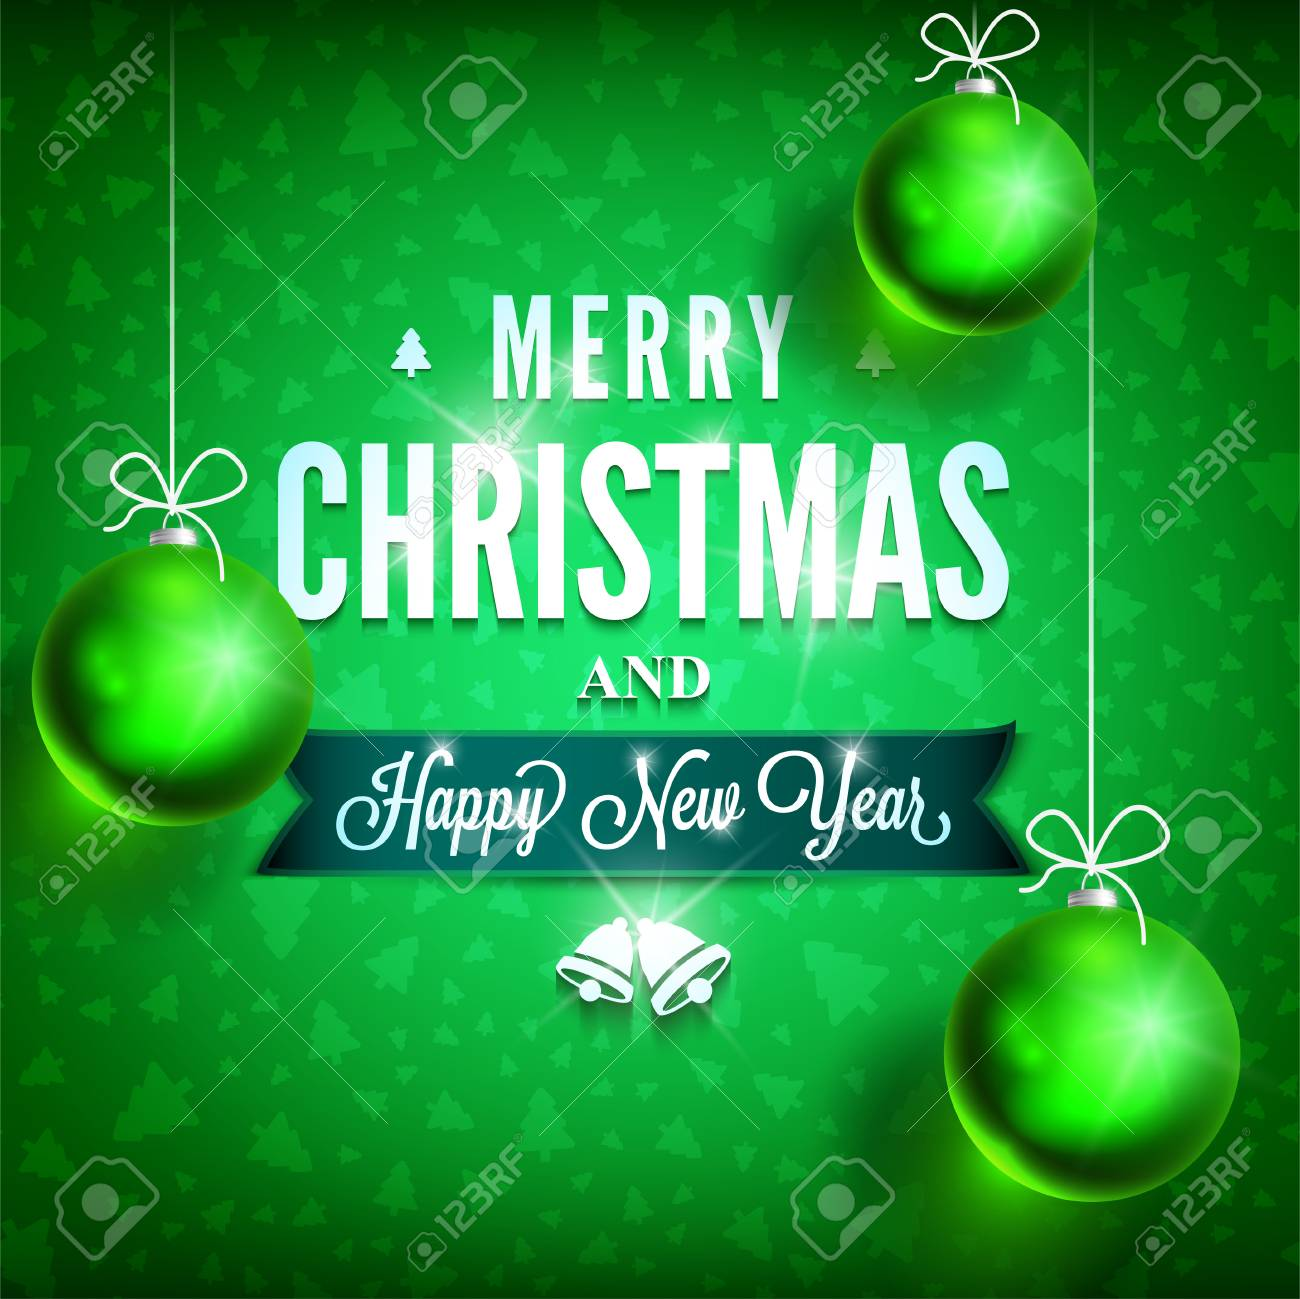 merry christmas and happy new year message on green background christmas related ornaments objects on